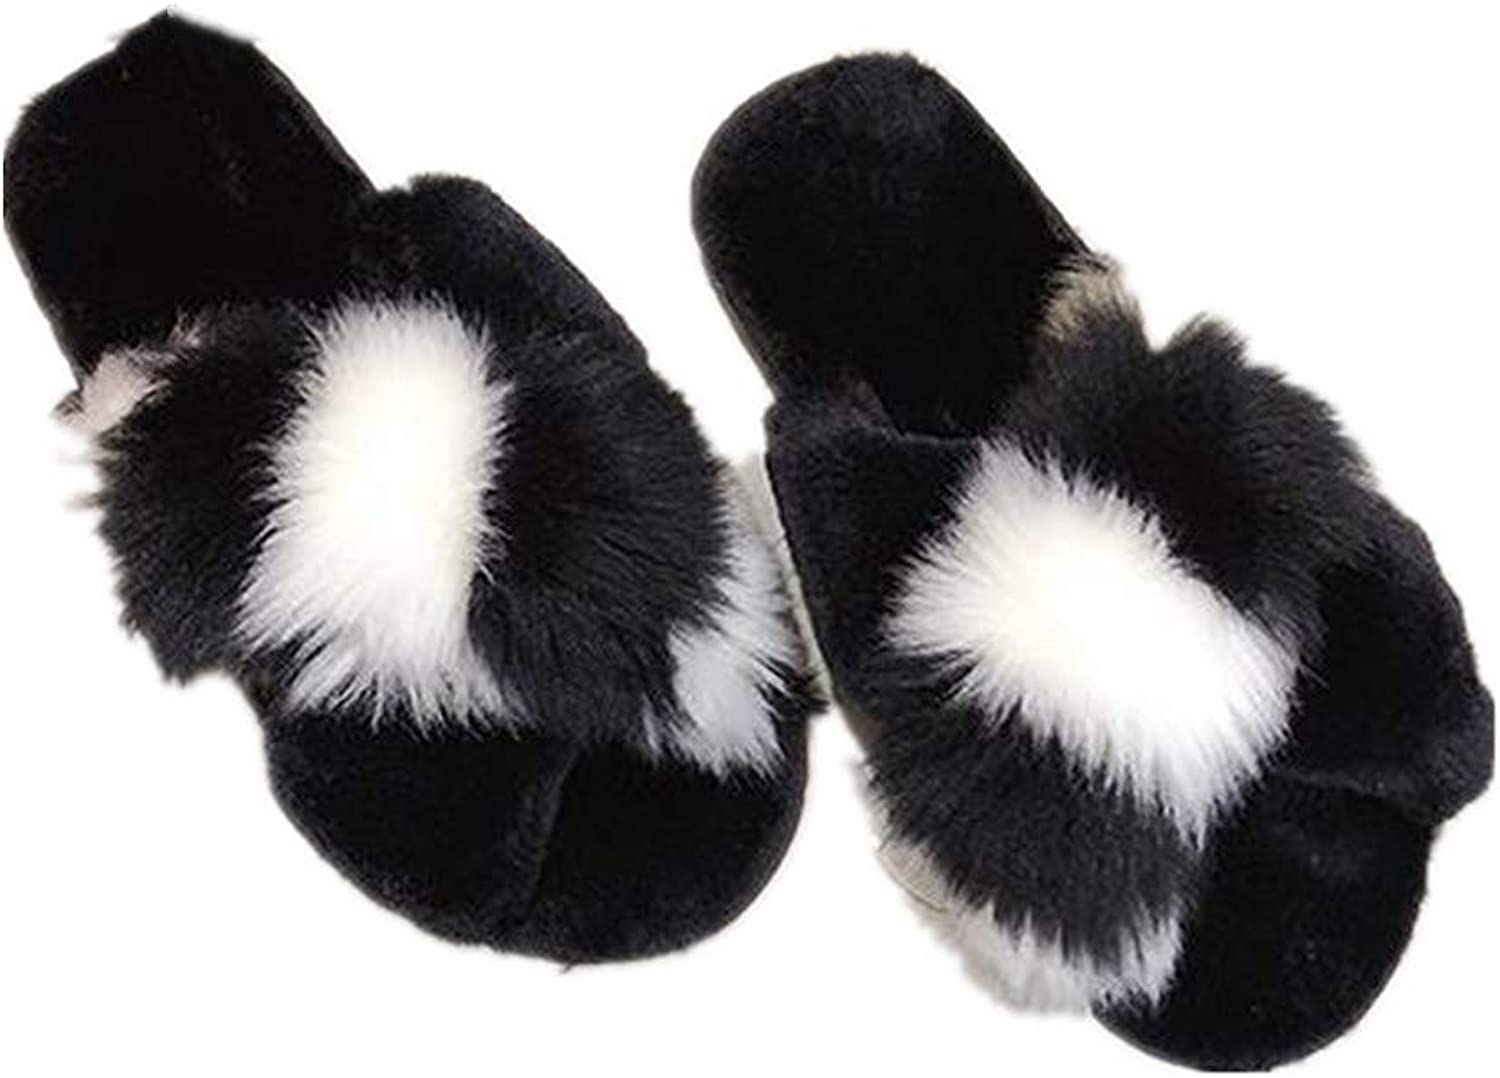 IINFINE Autumn and Winter Indoor and Outdoor Non-Slip Slippers